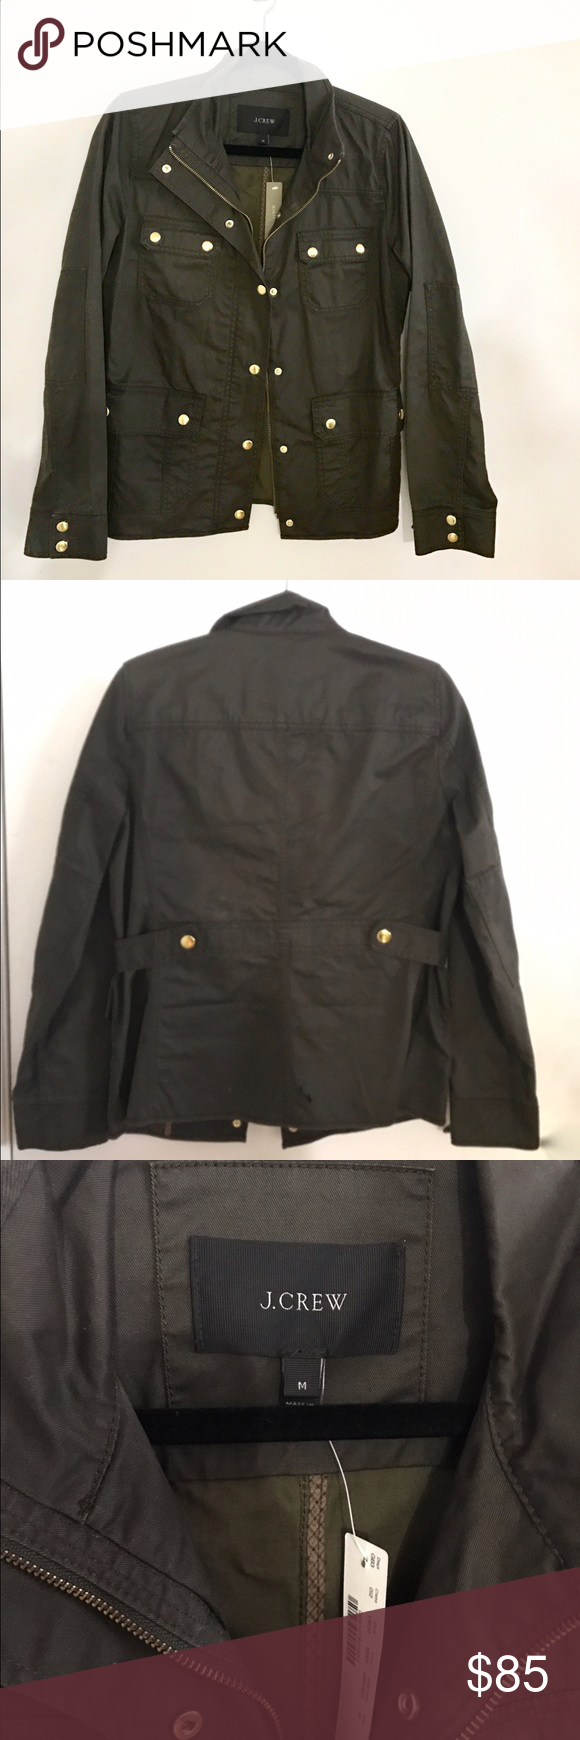 New with tag J Crew Dowtown Field Jacket (M) New with tag, in perfect condition from J Crew. size Medium and perfect for spring! J. Crew Jackets & Coats